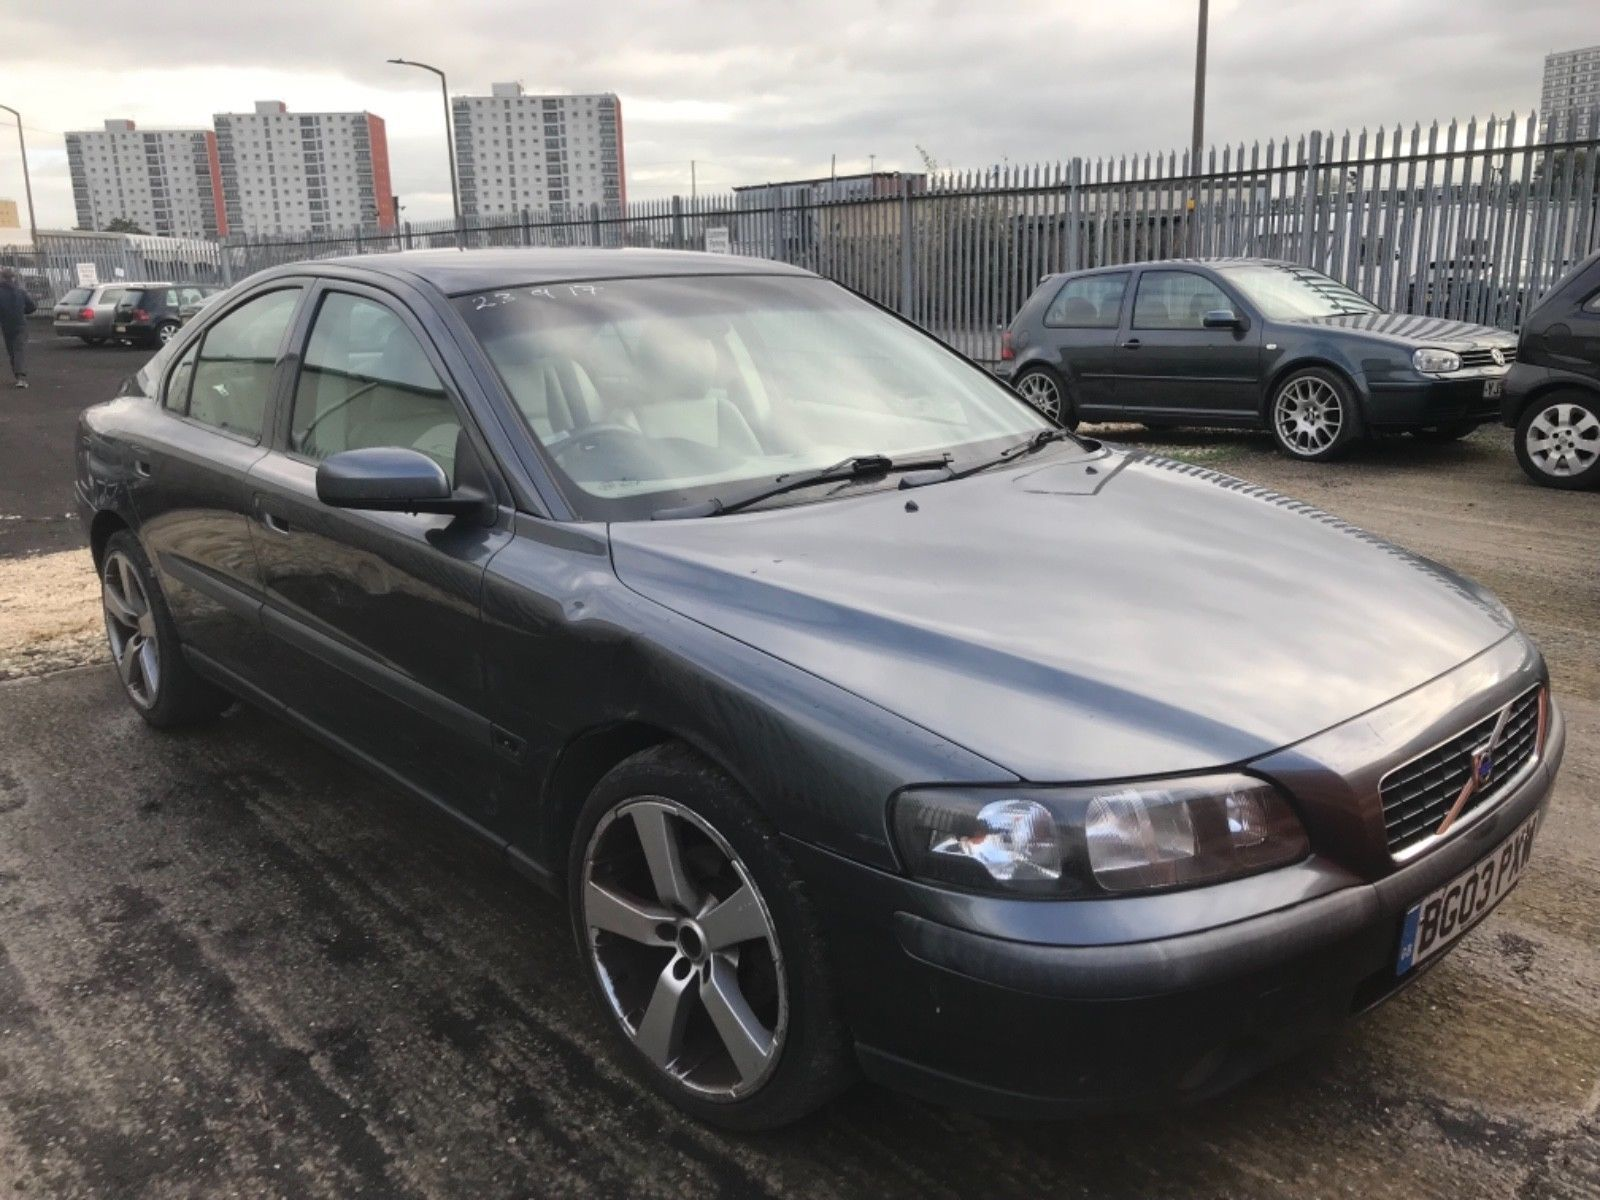 eBay: 2003 Volvo S60 D5 2.4 sel Unrecorded Salvage Light wing ...